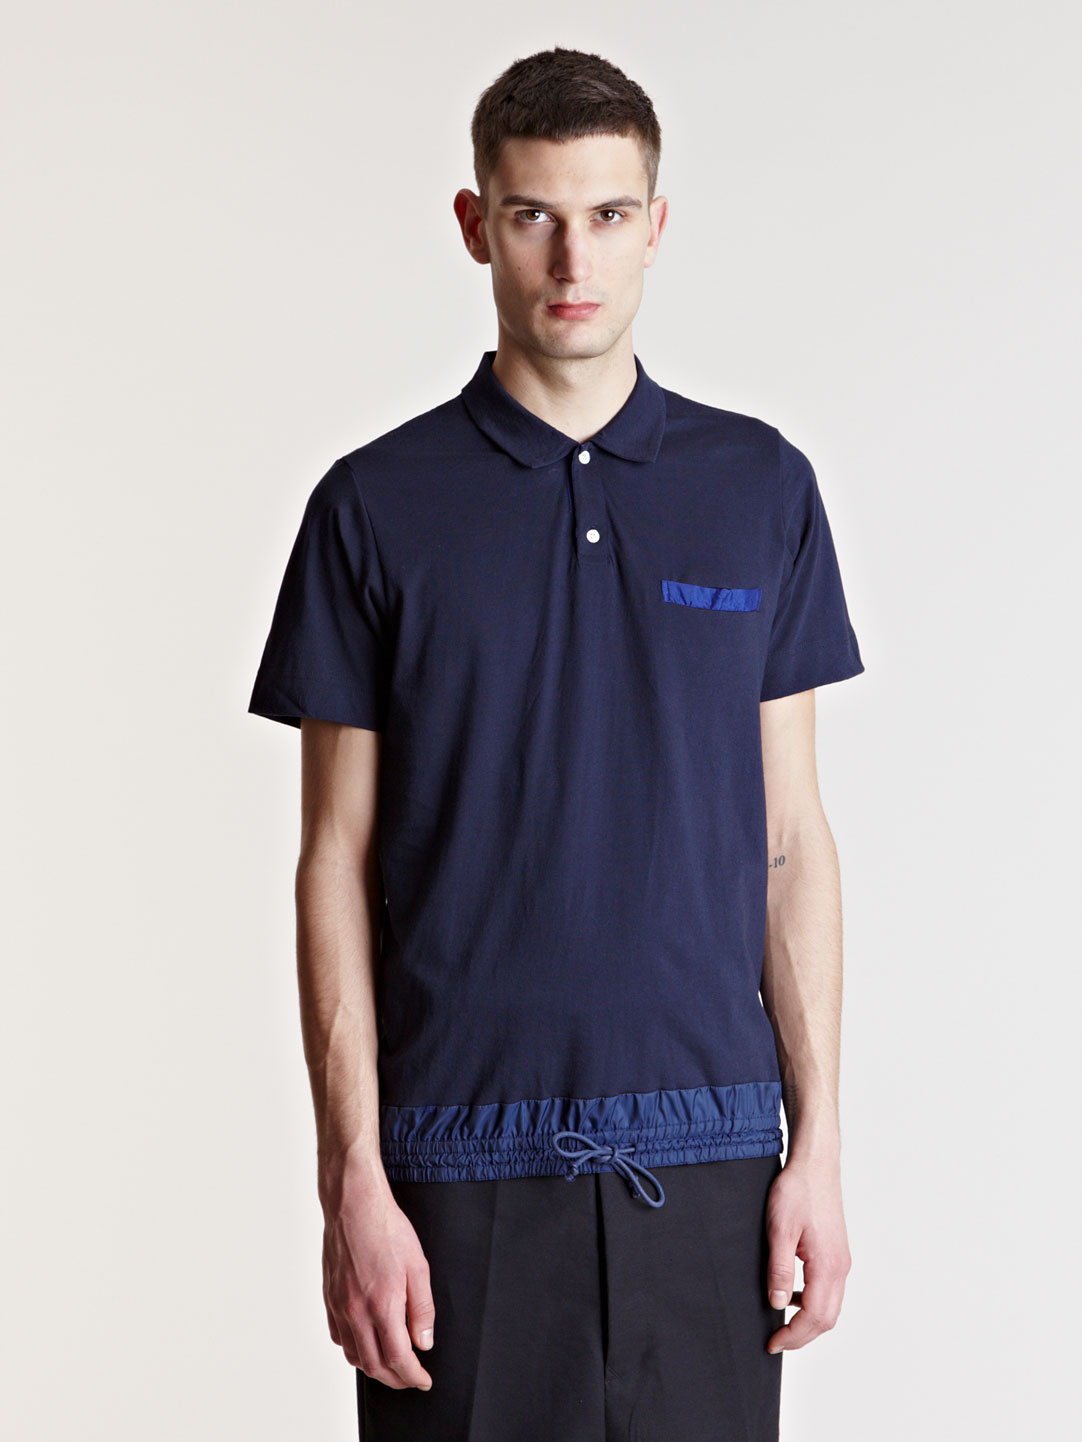 Sacai polo shirt in blue for men lyst Man in polo shirt